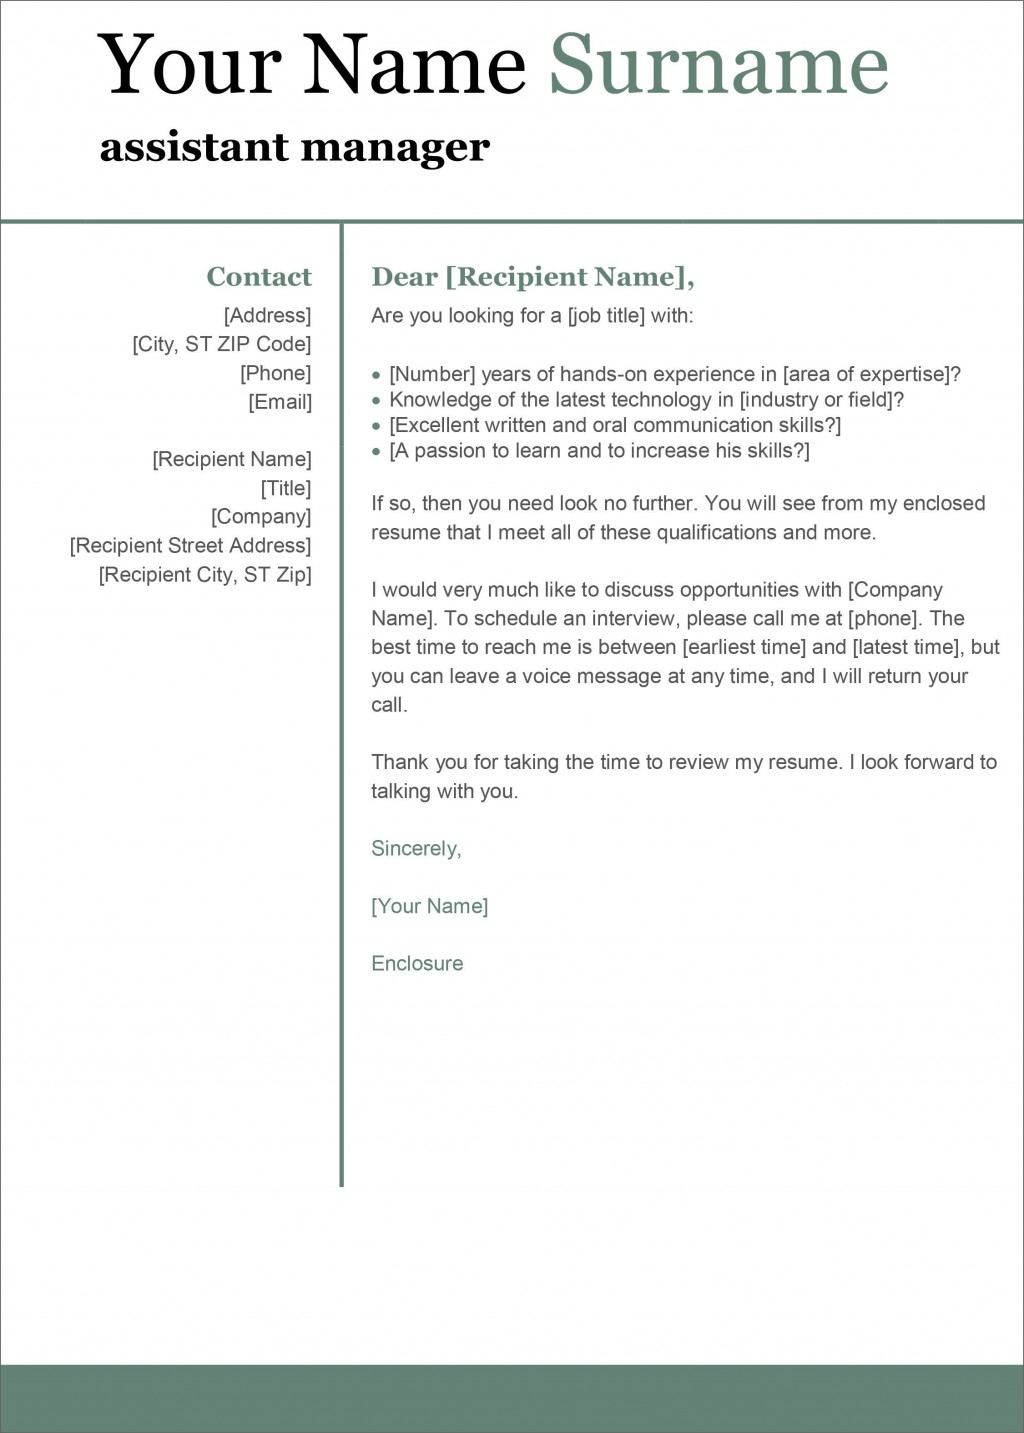 003 Best Letter Template M Word Design  Fax Cover Microsoft Busines AuthorizationLarge